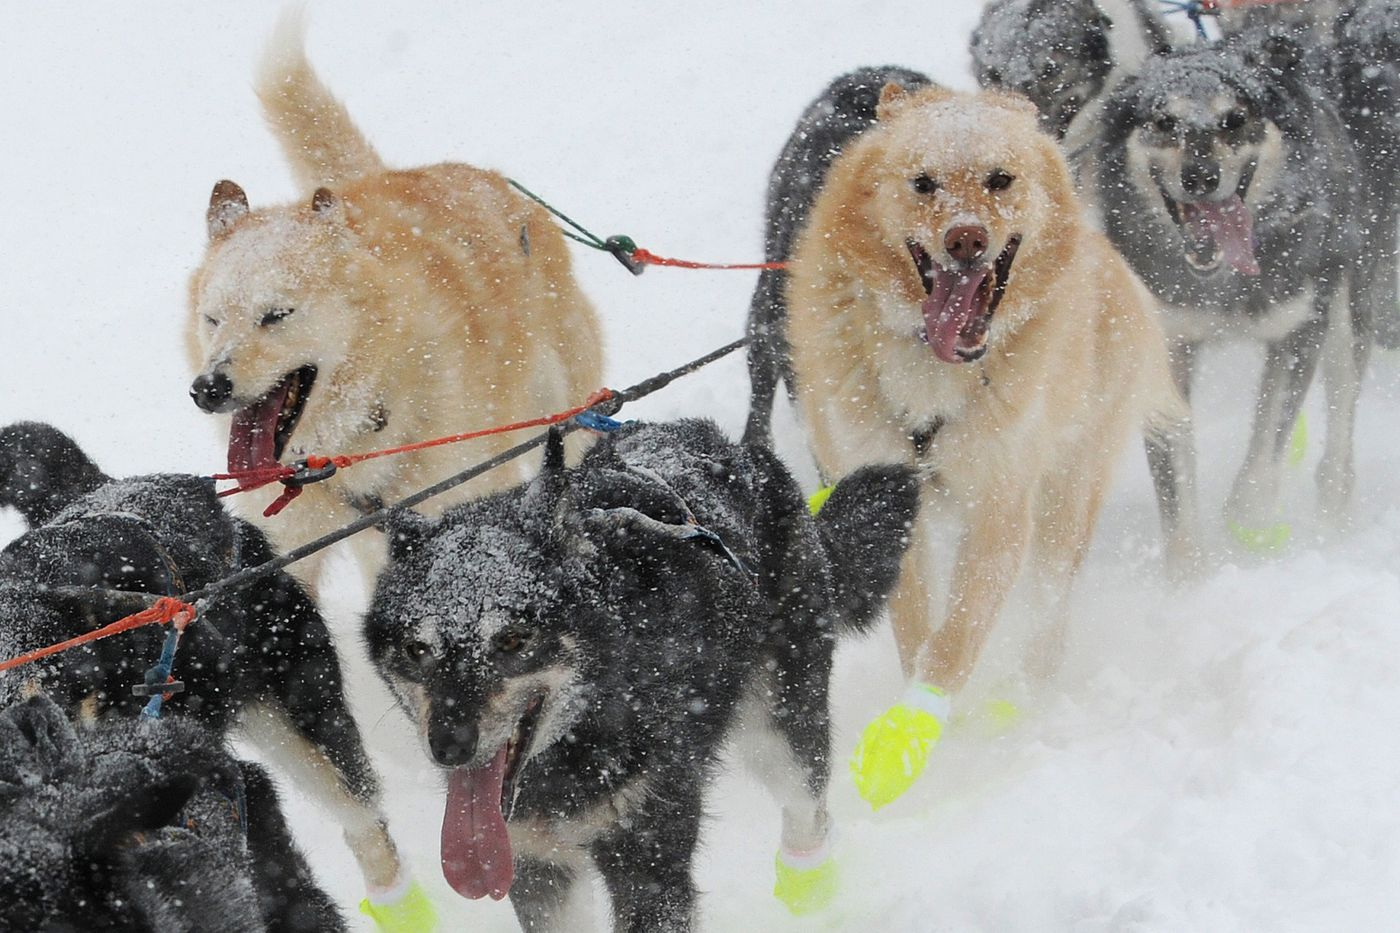 Sled dogs in the team of Brent Sass drive run the snowstorm as they cross Long Lake during the restart of the Iditarod Trail Sled Dog Race in Willow on Sunday, March 8, 2020. (Bill Roth / ADN)